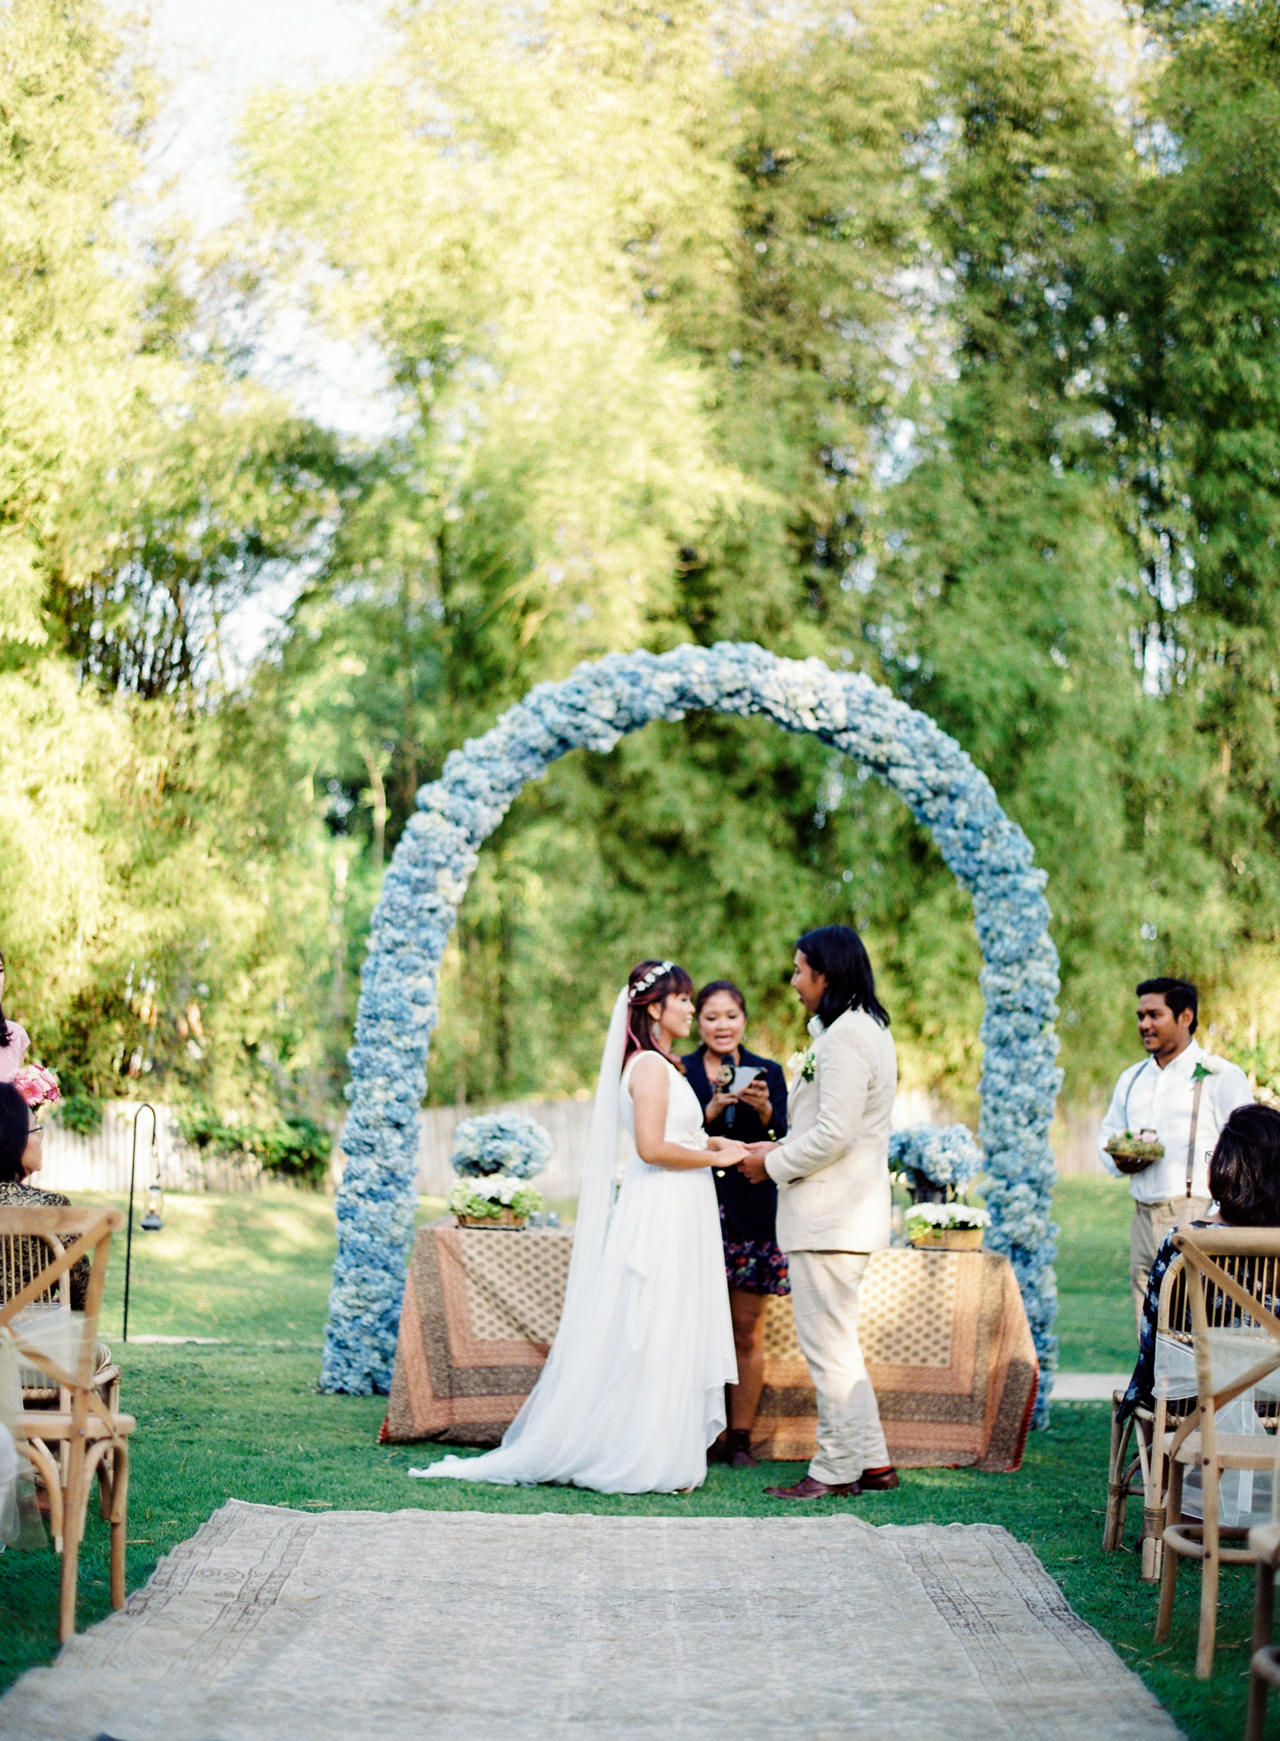 The Wedding of Bayu and Ivony at Gorgeous Bali Wedding Venue 21